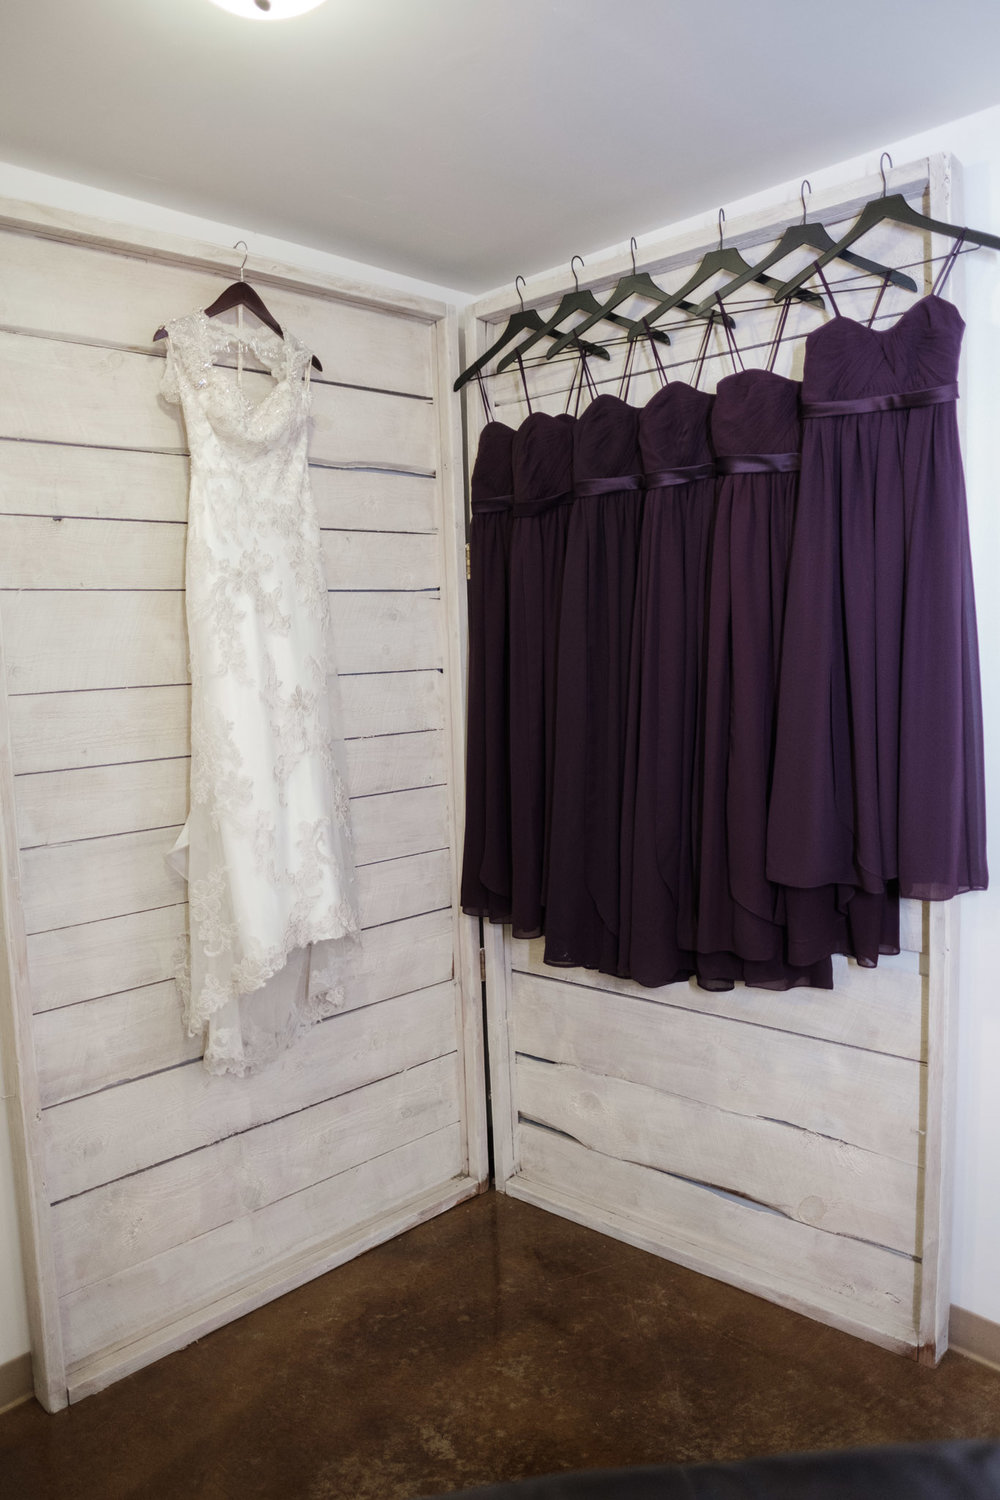 Bride and bridesmaid dresses hanging on shiplap wall at WIlliams Tree Farm wedding in Roscoe Illinois